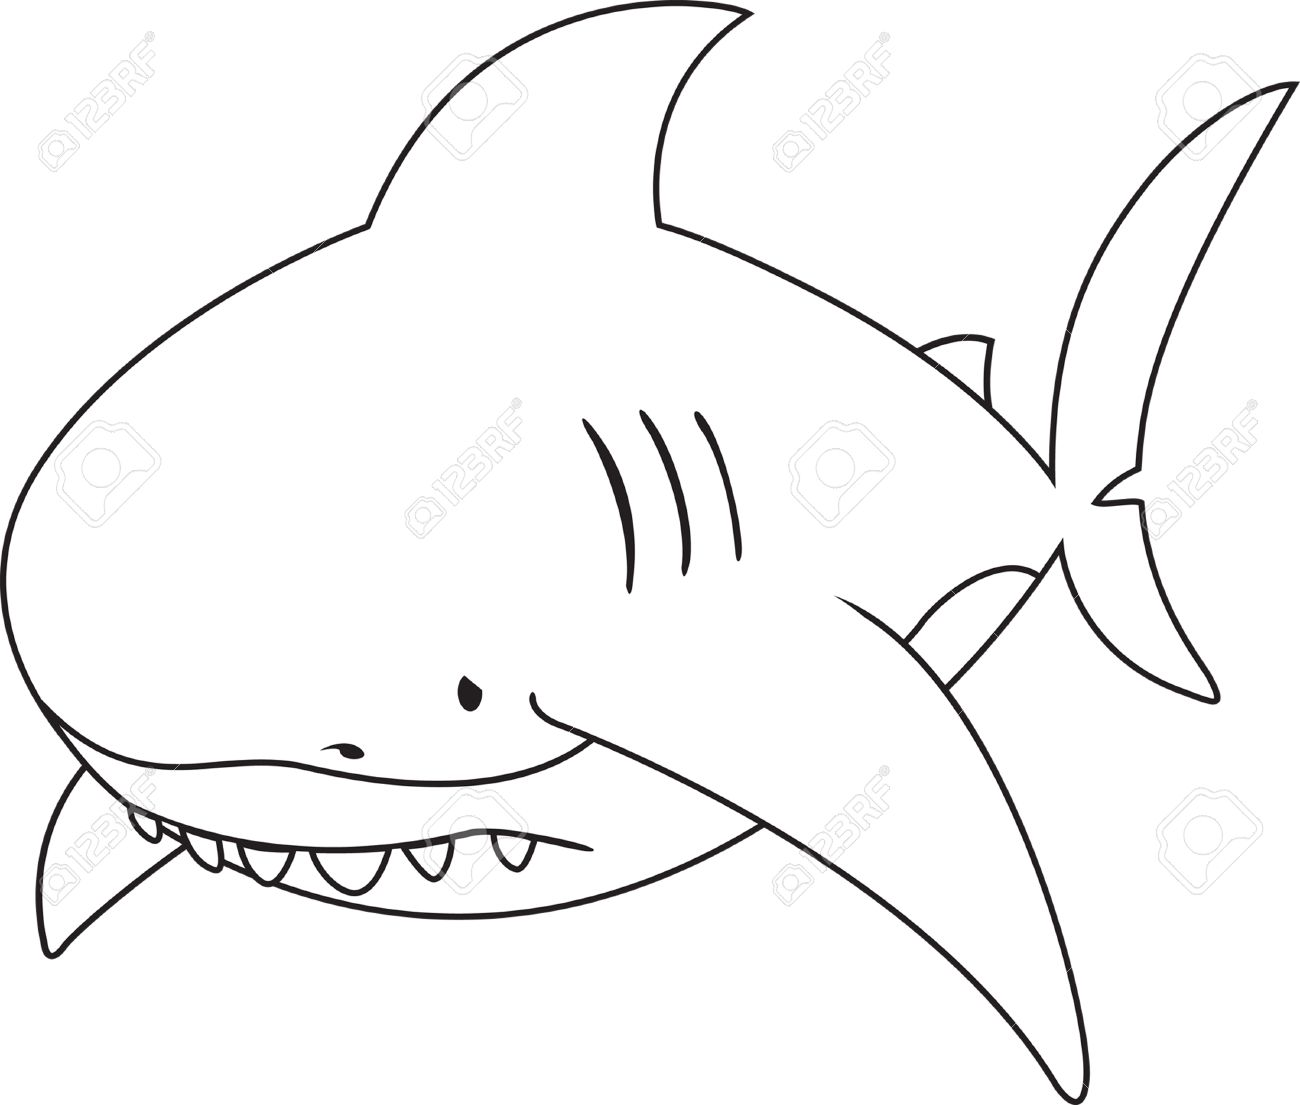 sad looking great white sharkcoloring book stock vector 39328562